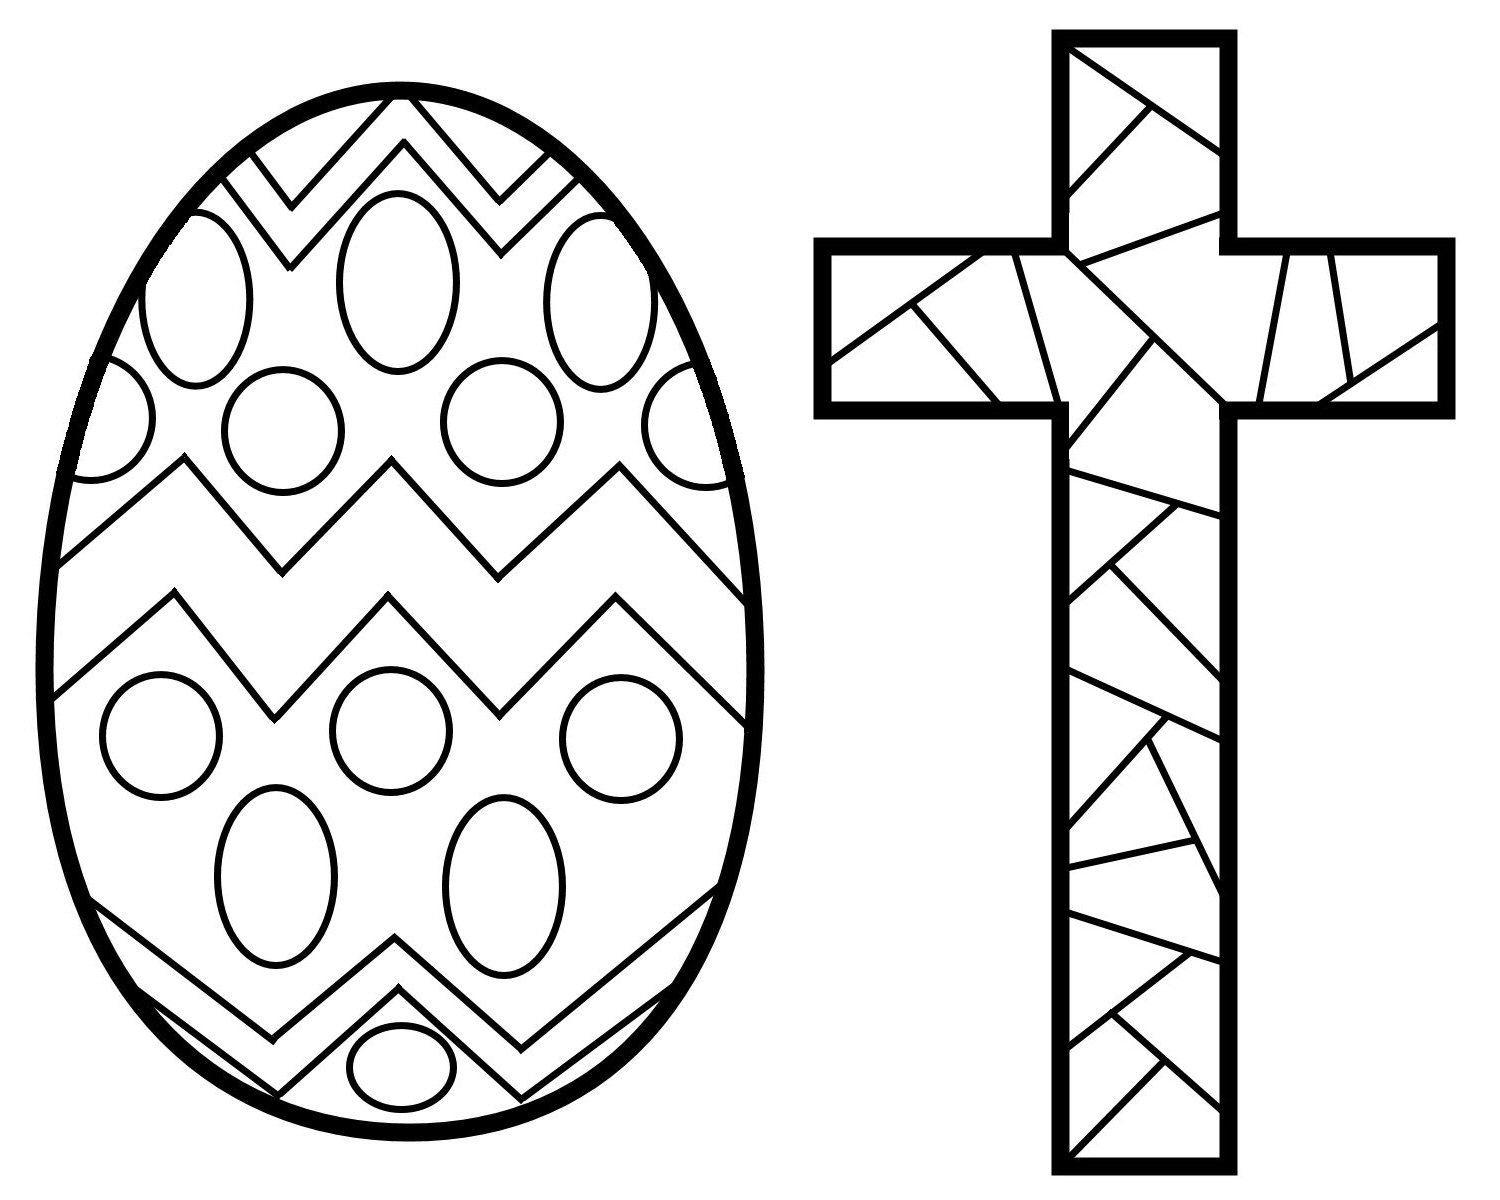 Adult Beauty Stained Glass Window Coloring Page Images cute stained glass window coloring pages download and print for free images